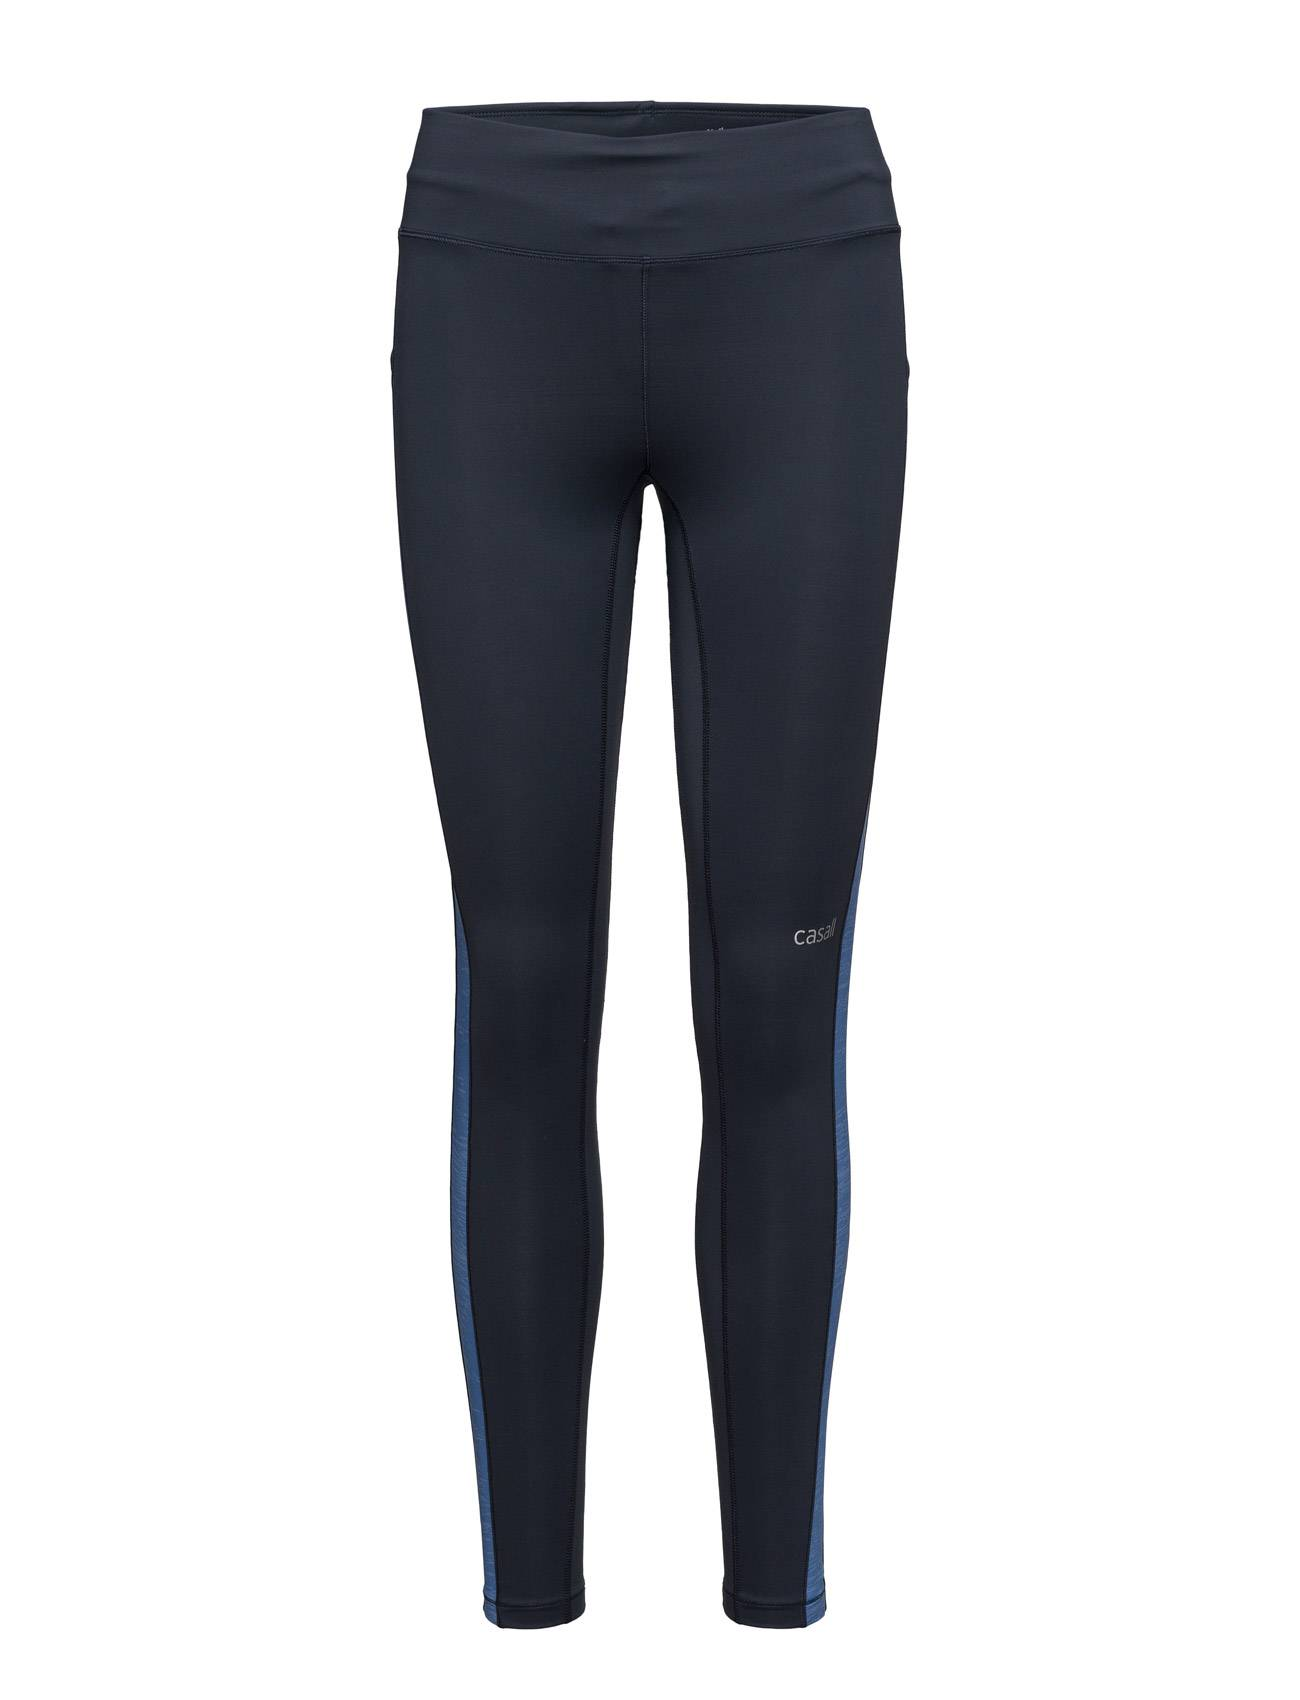 Casall Structured Panel Tights